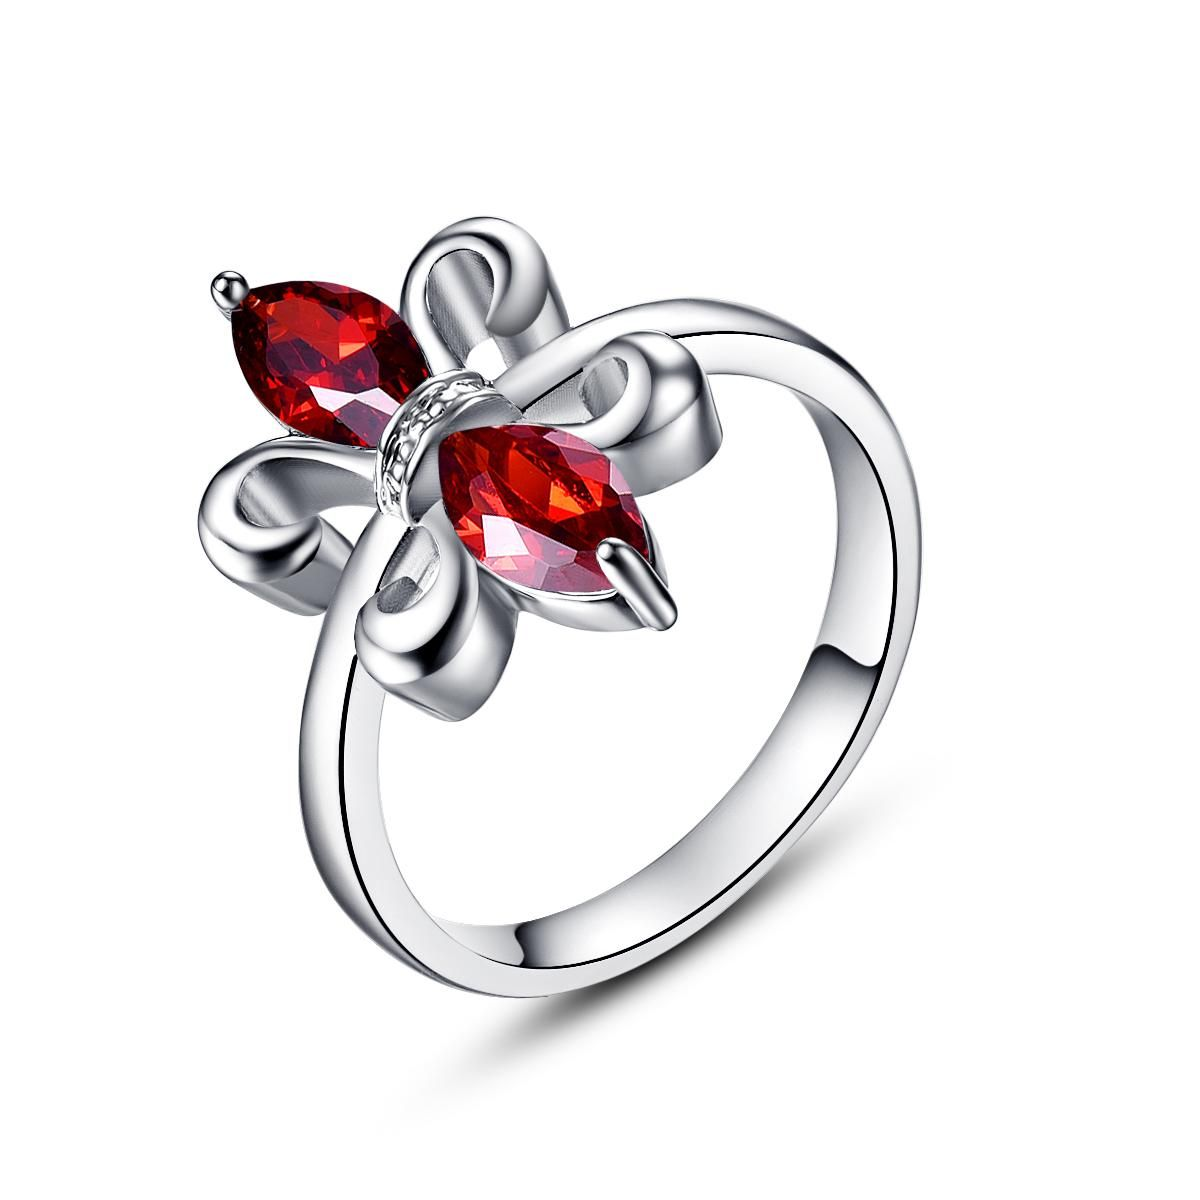 Visit to buy lingmei exquisite flowers countess ring red marquise